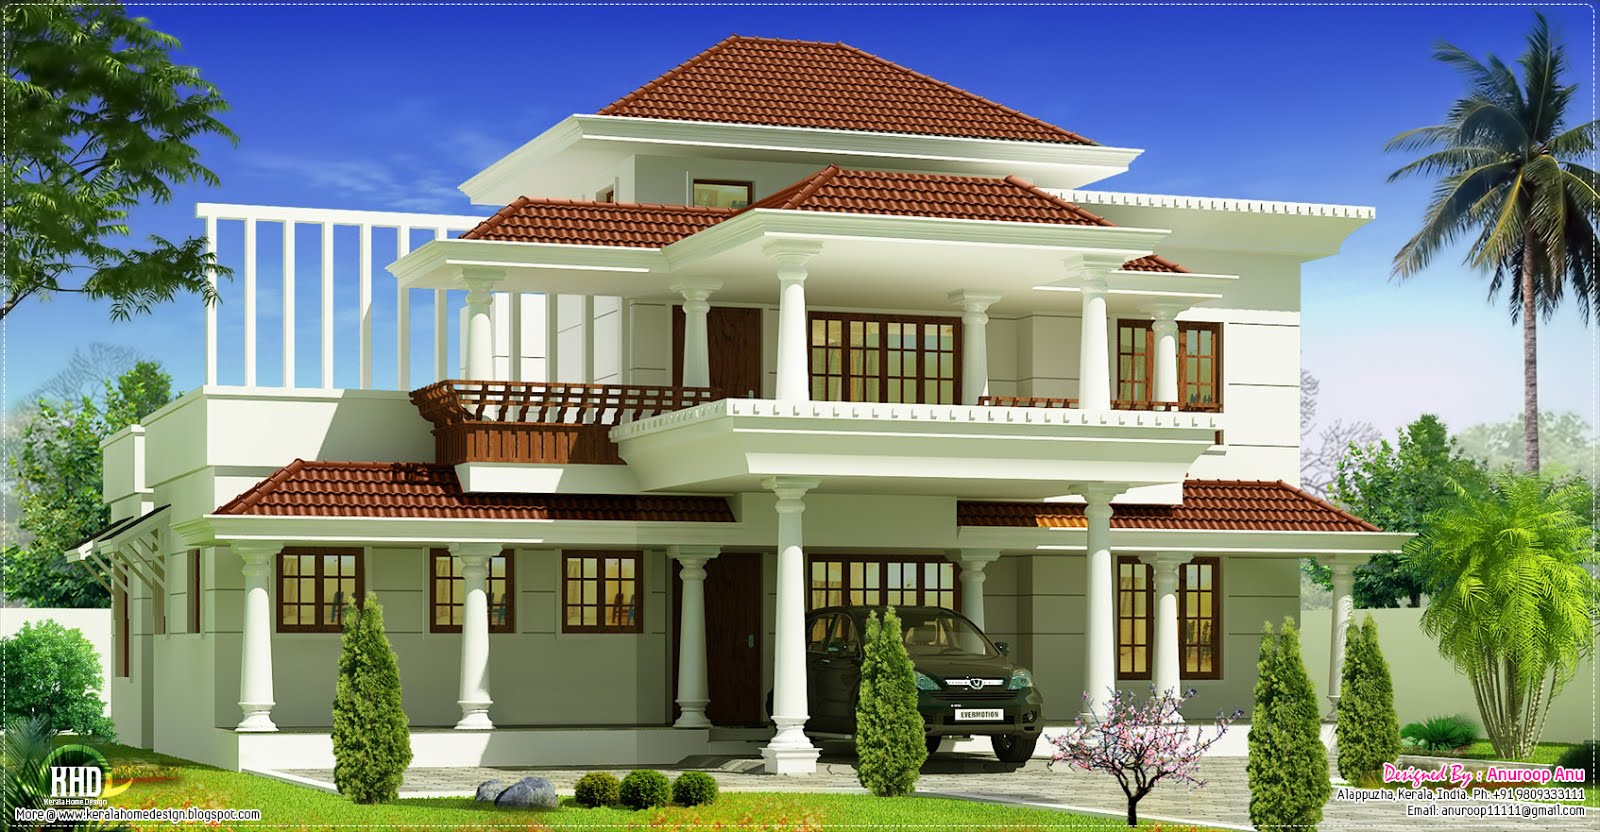 Kerala house models houses plans designs for Kerala house models and plans